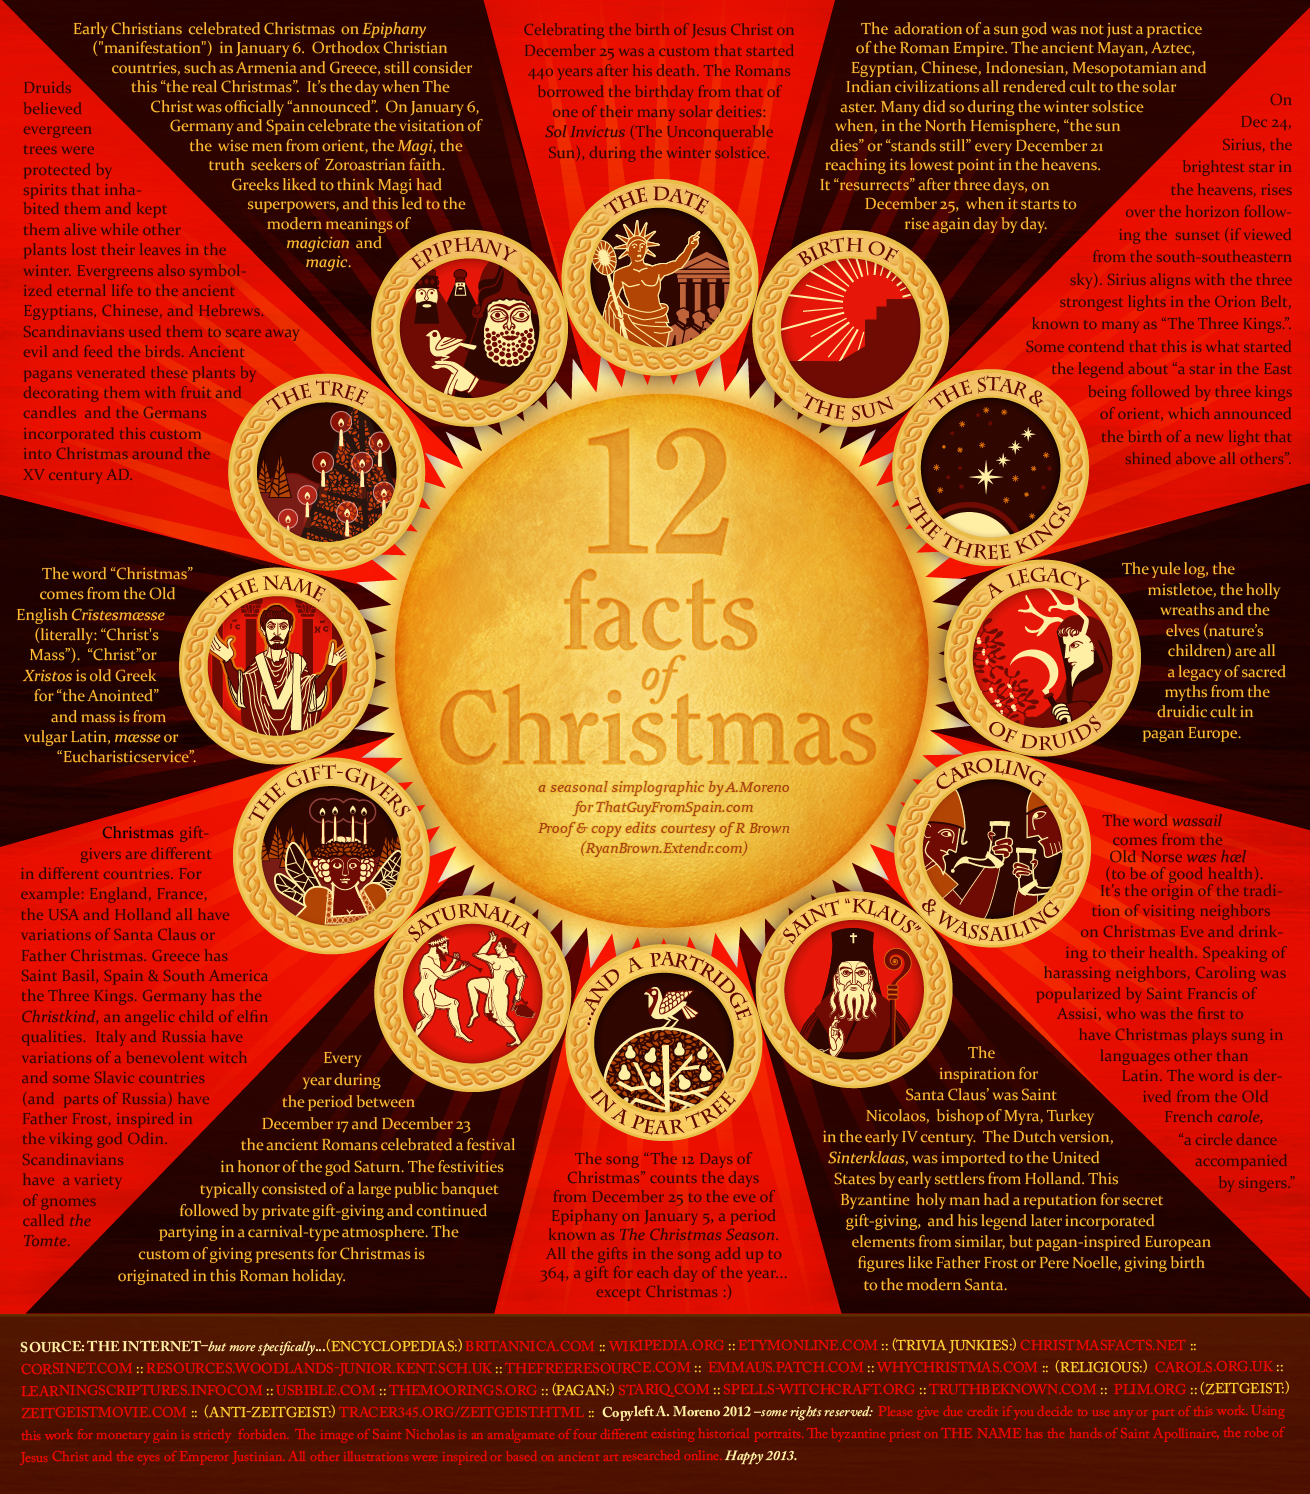 History Of The Christmas Tree Pagan: The 12 Facts Of Christmas! Fun Little Read About The